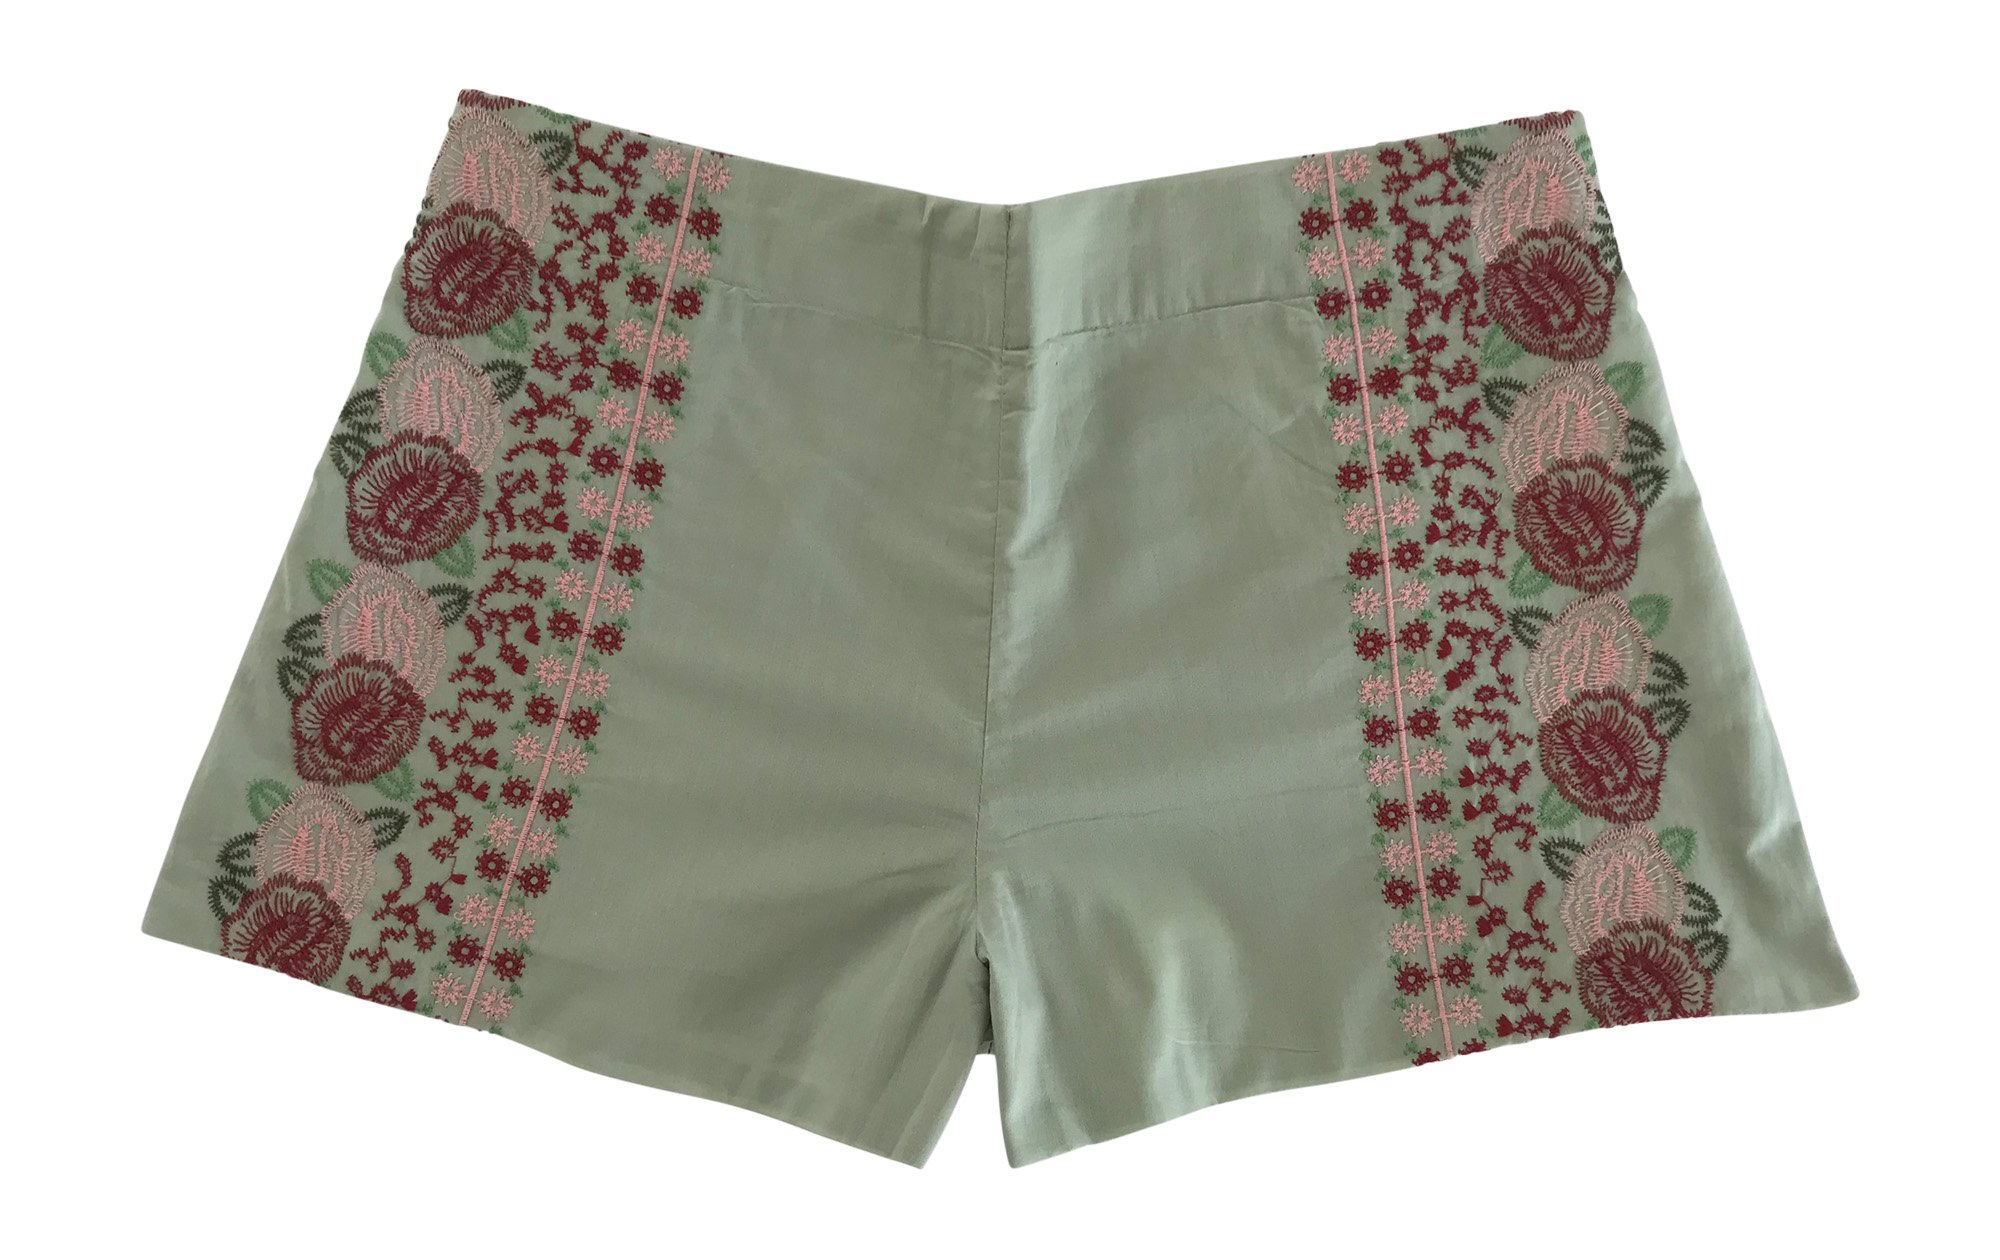 Isa & Ella Women's Floral Embroidered Shorts, Sage, Small